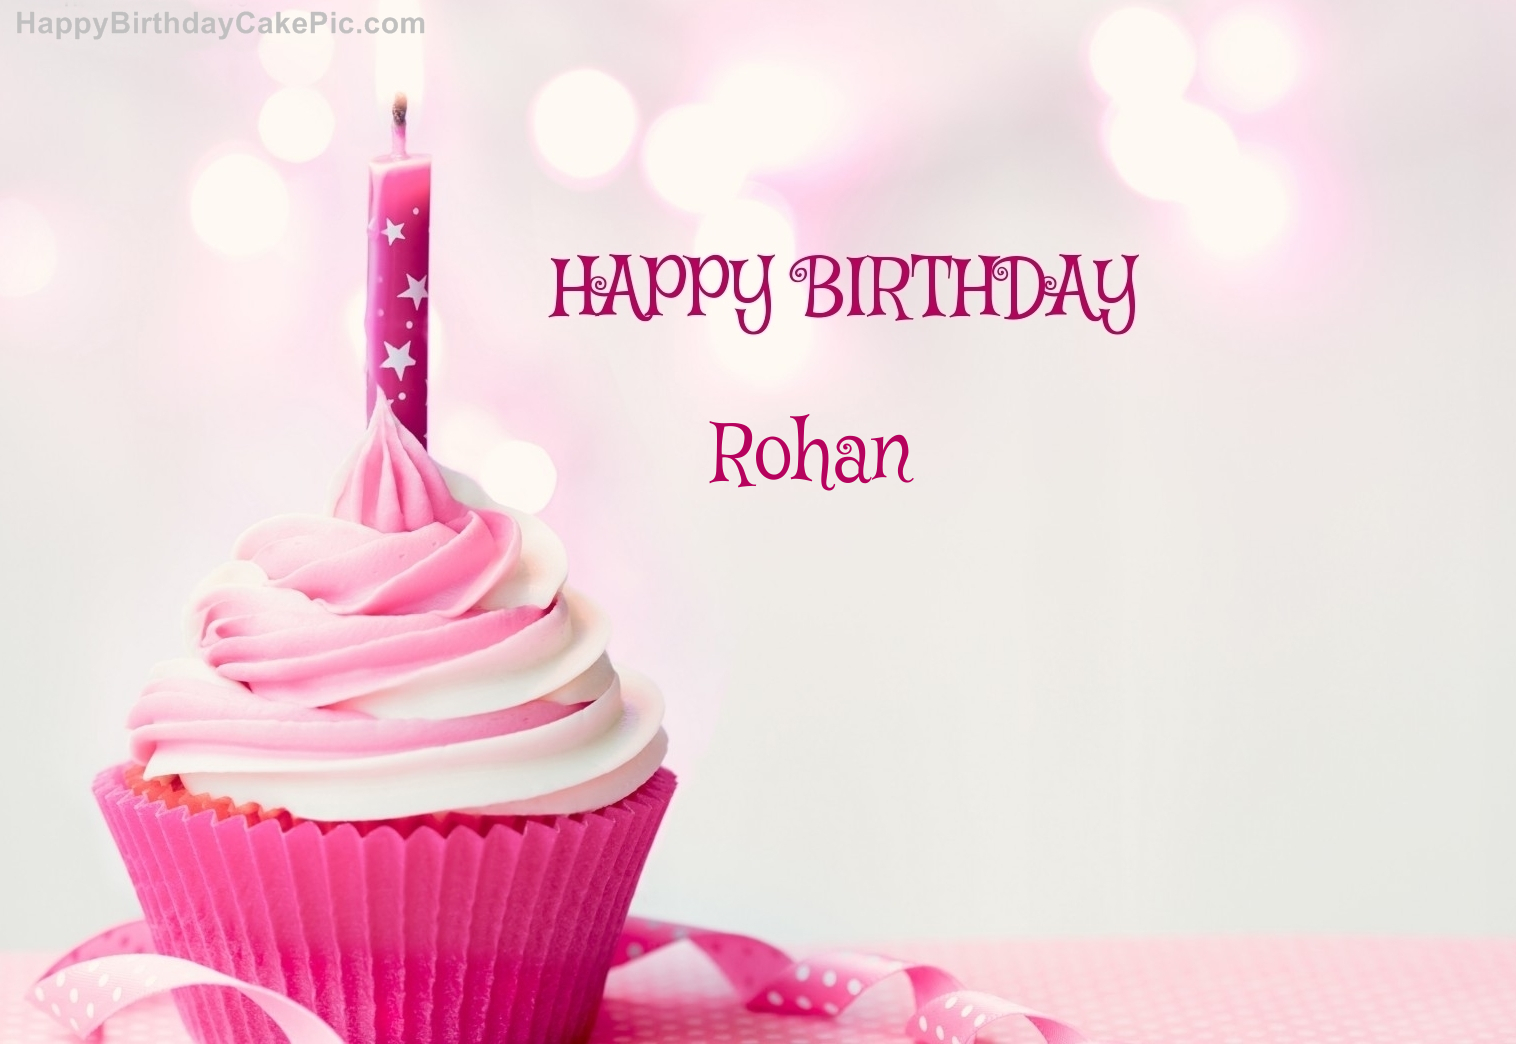 Happy Birthday Cupcake Candle Pink Cake For Rohan